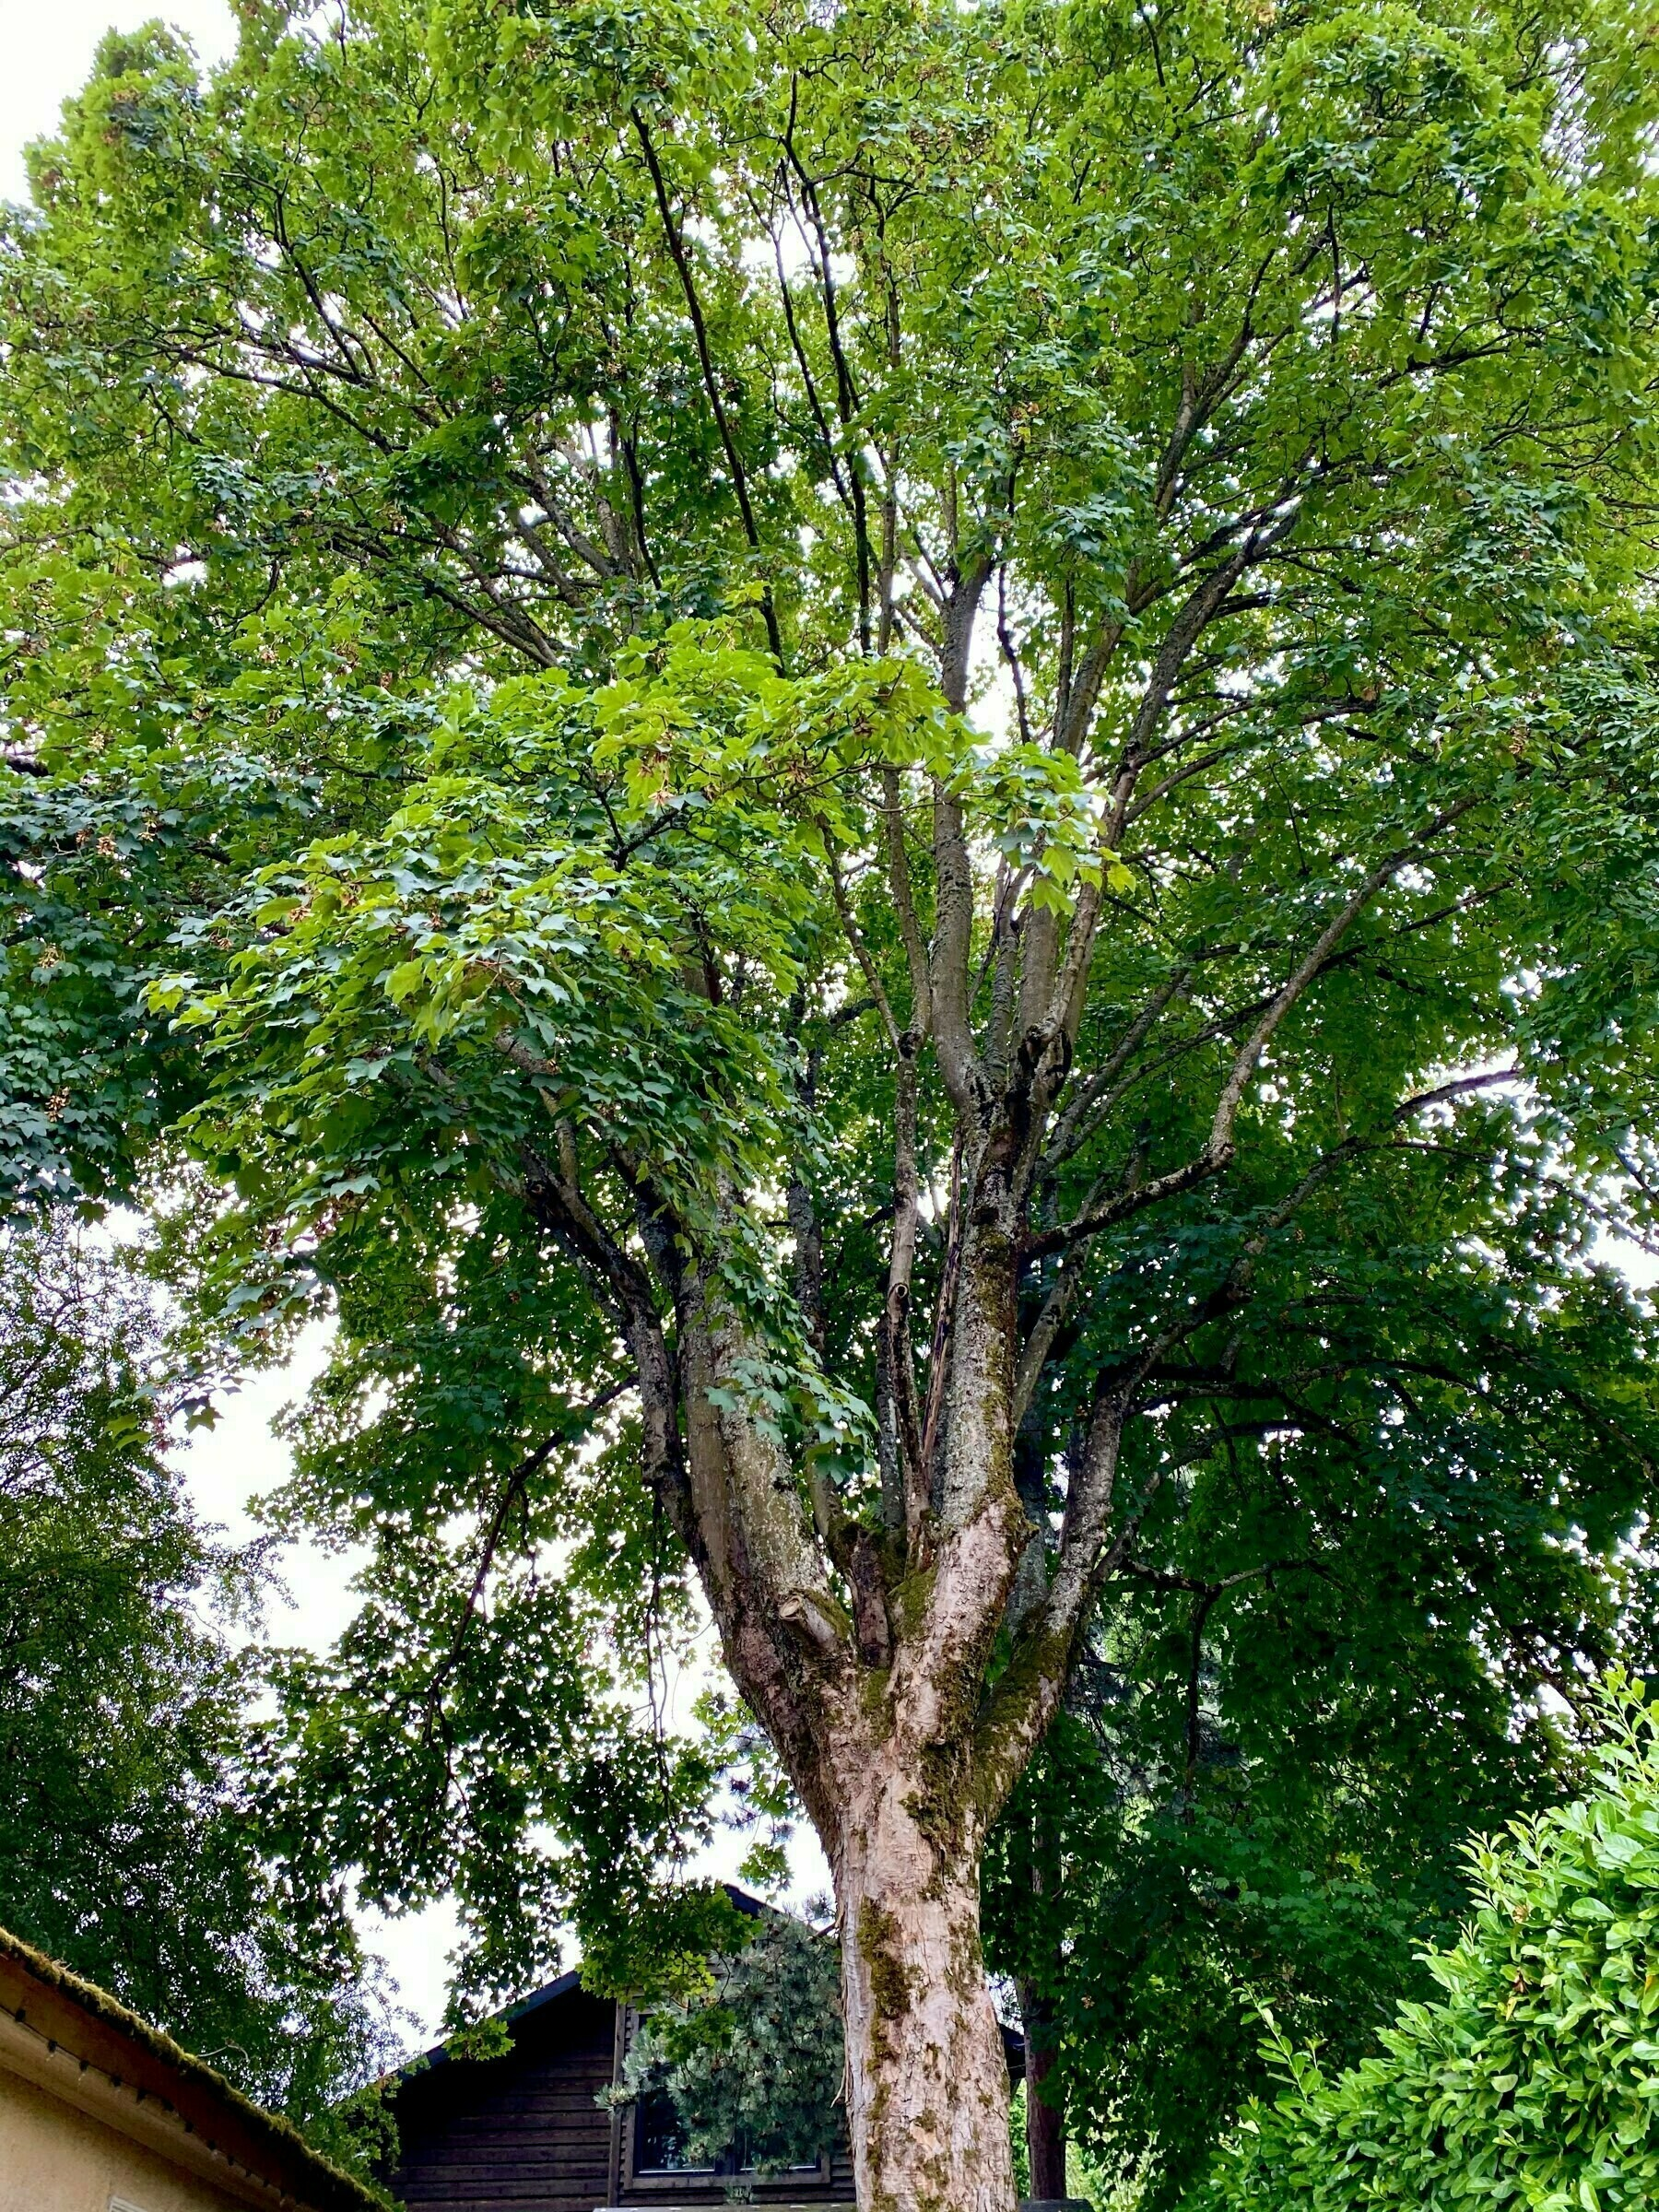 Large sycamore maple canopy fills the frame